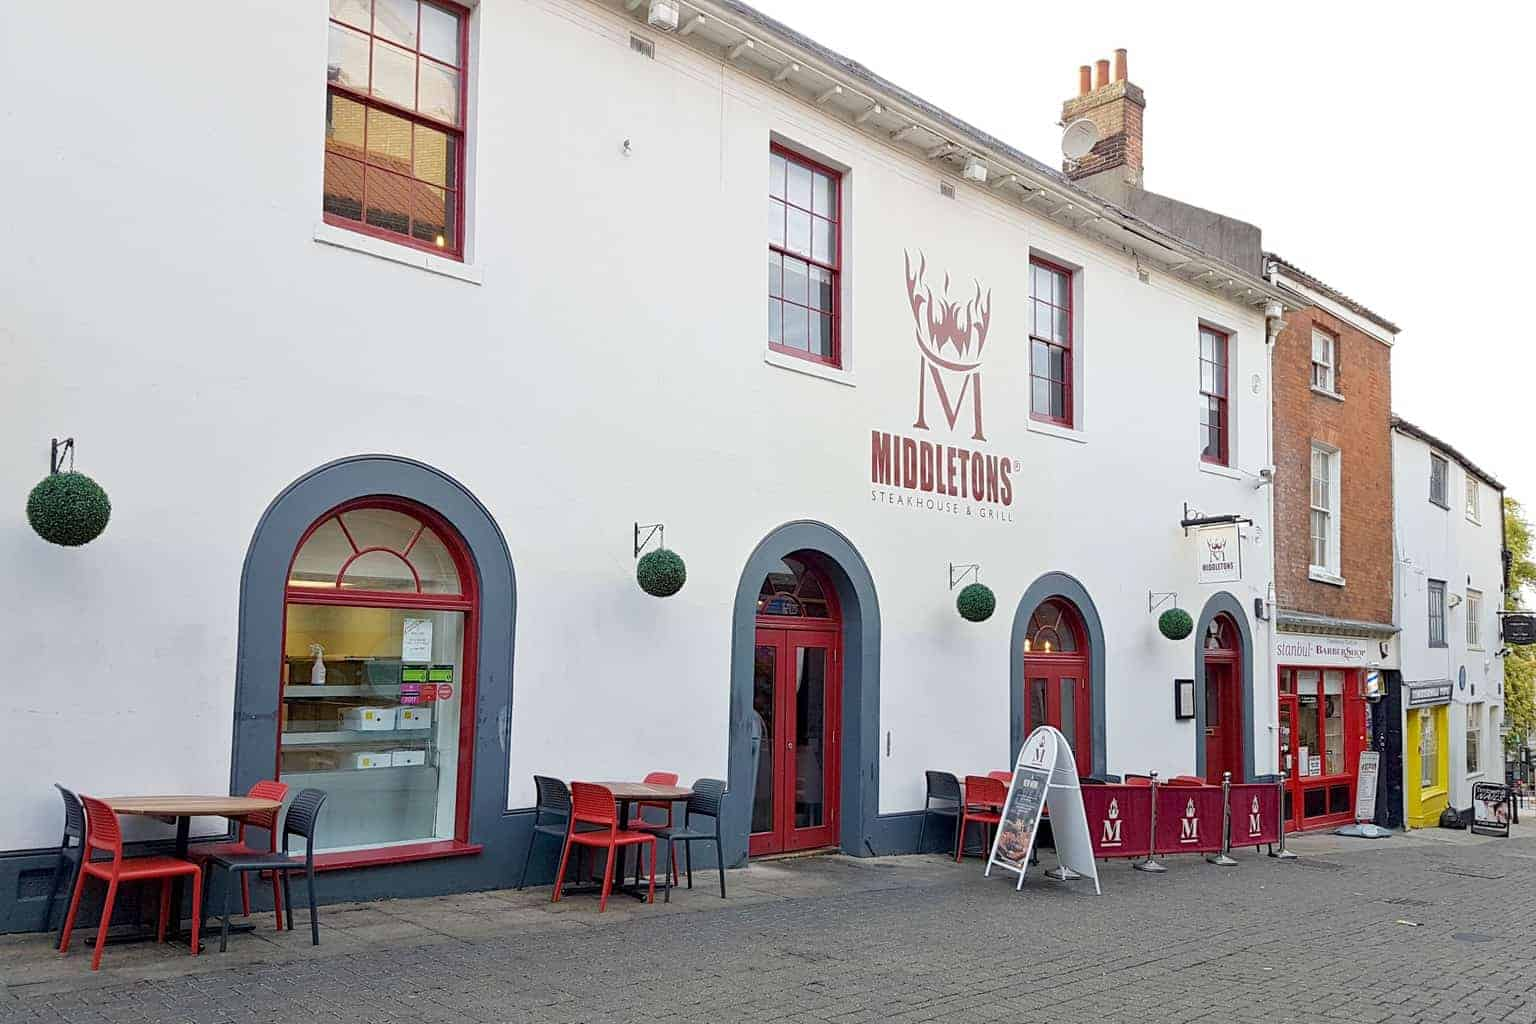 Middletons Steakhouse & Grill, Norwich